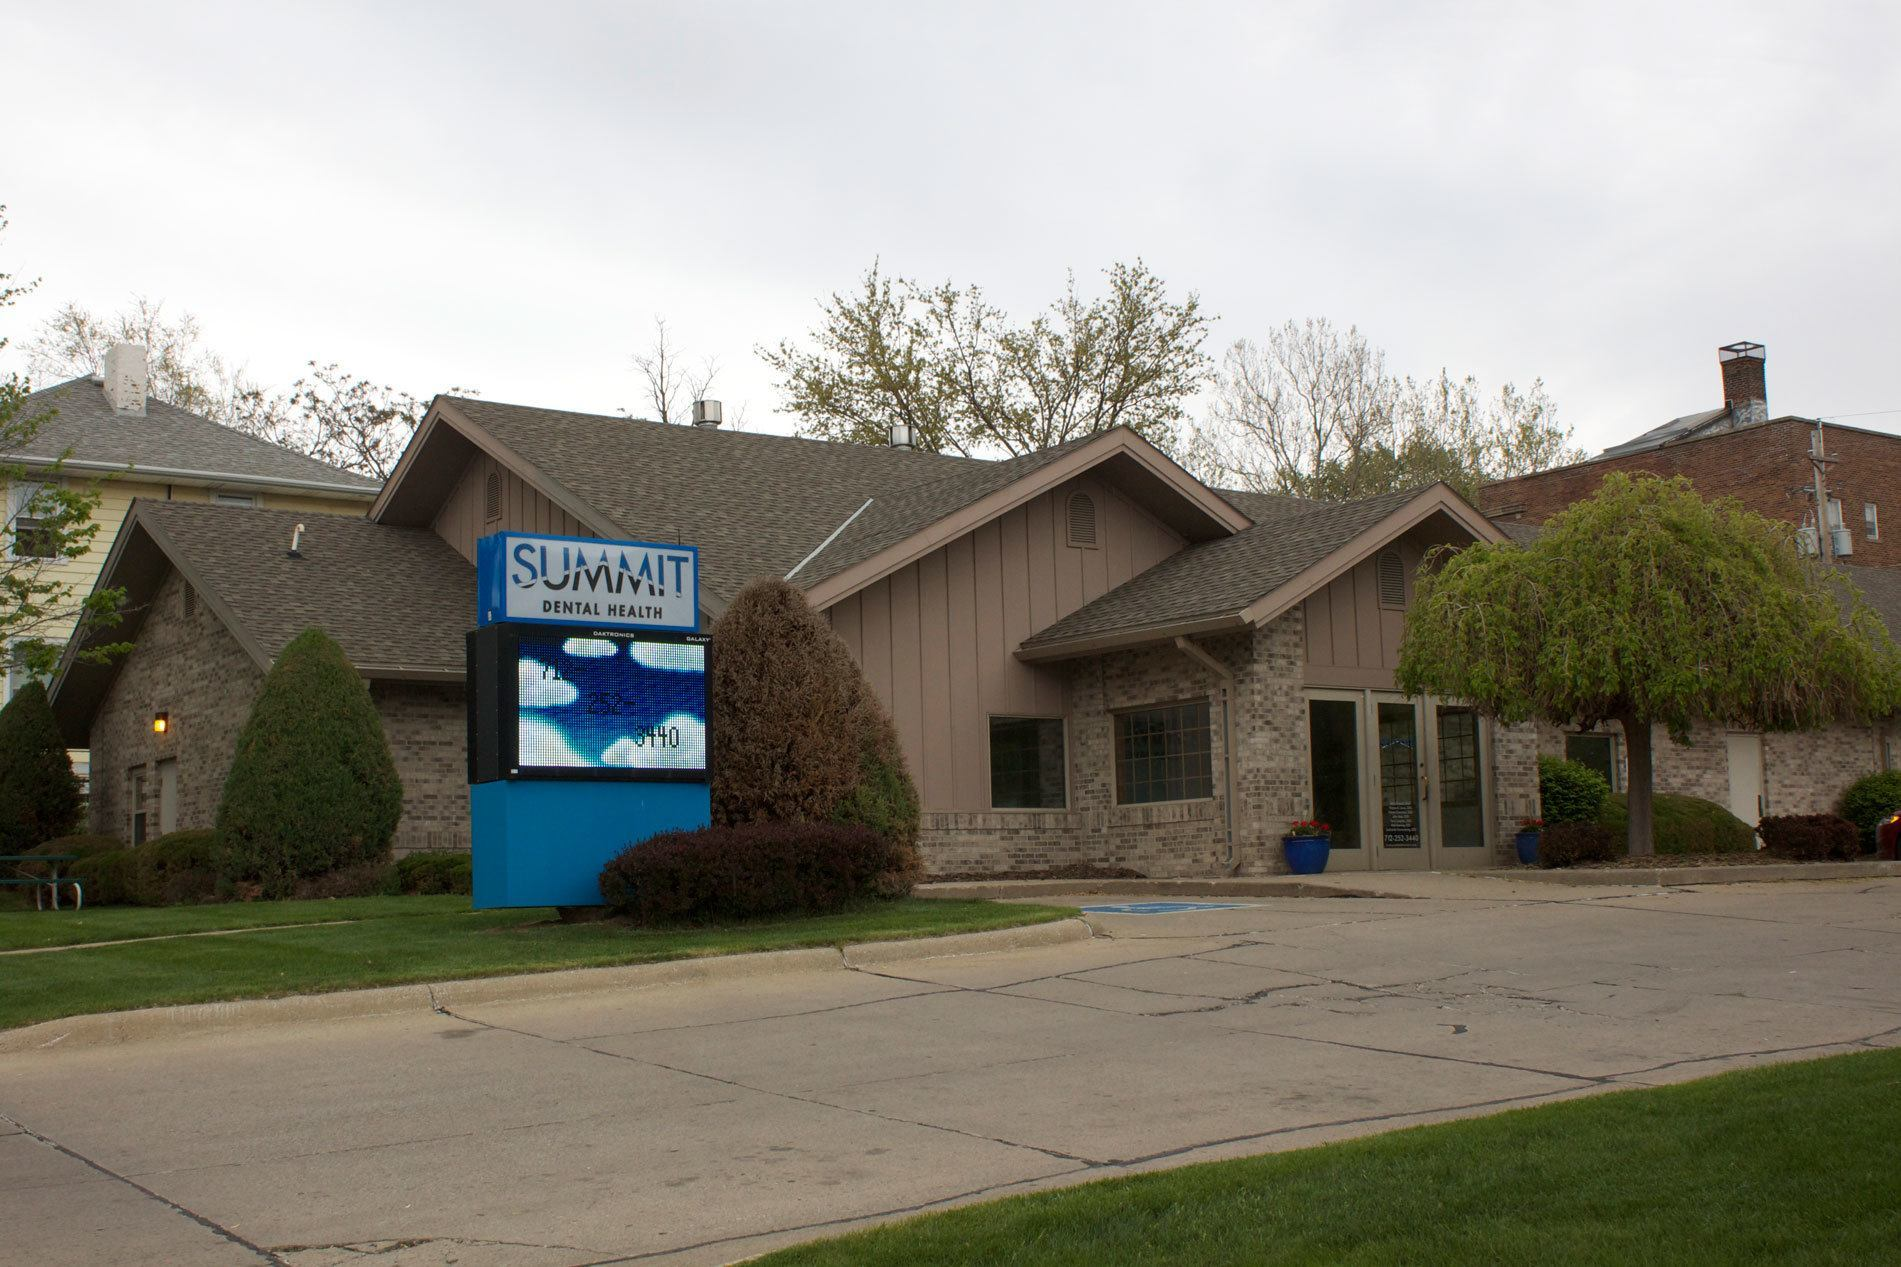 Summit Dental Heath Sioux City Iowa